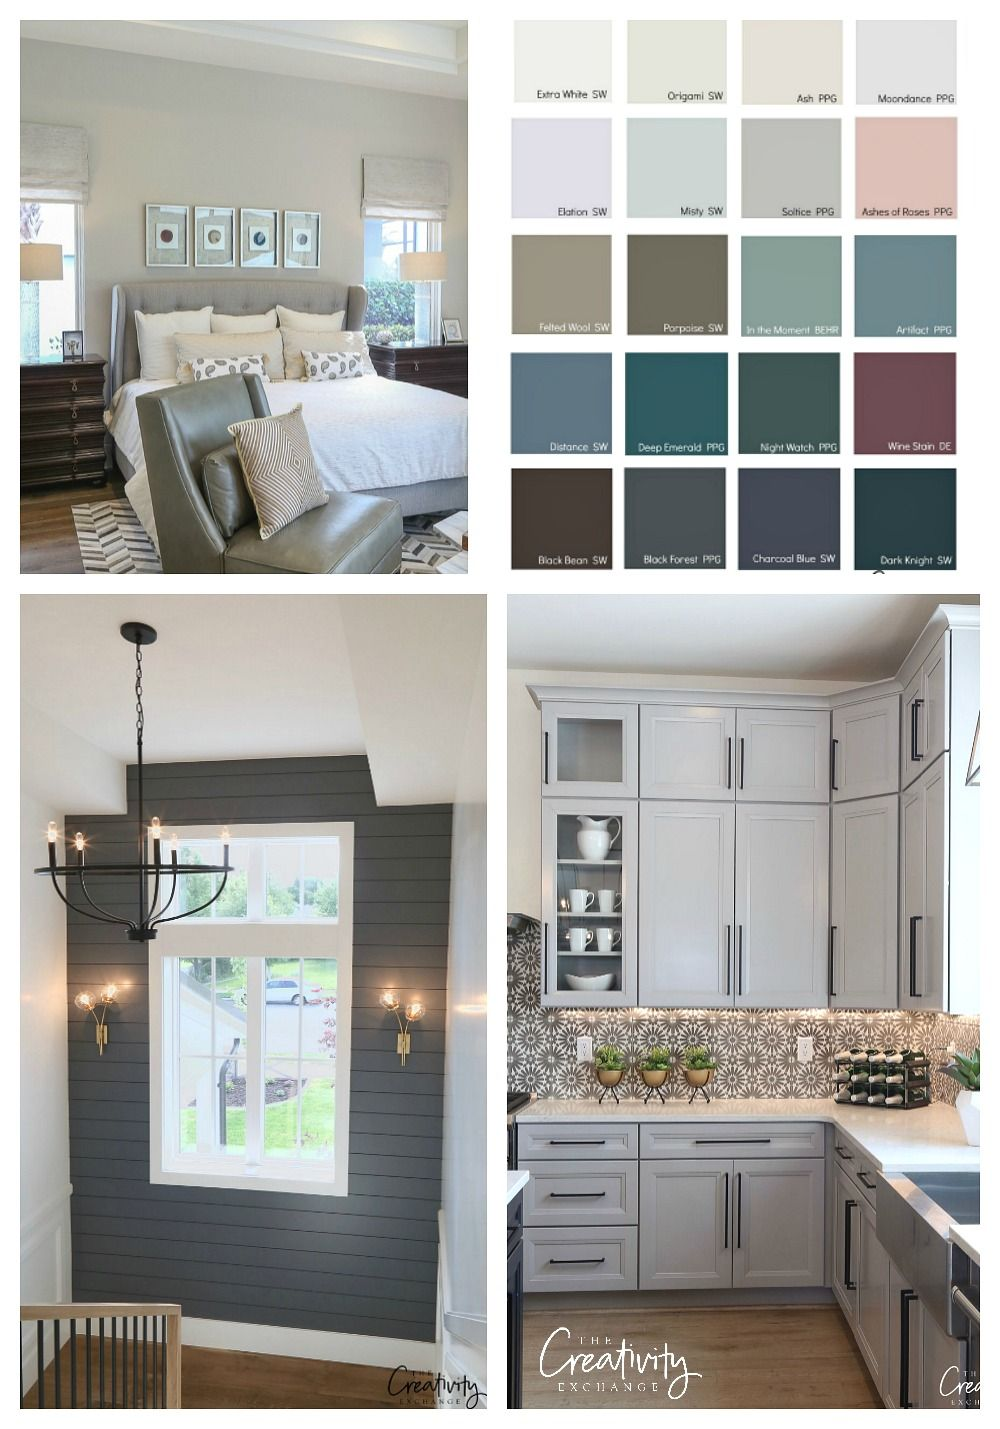 2019 paint color trends and forecasts paint colors on best color for inside house id=82346